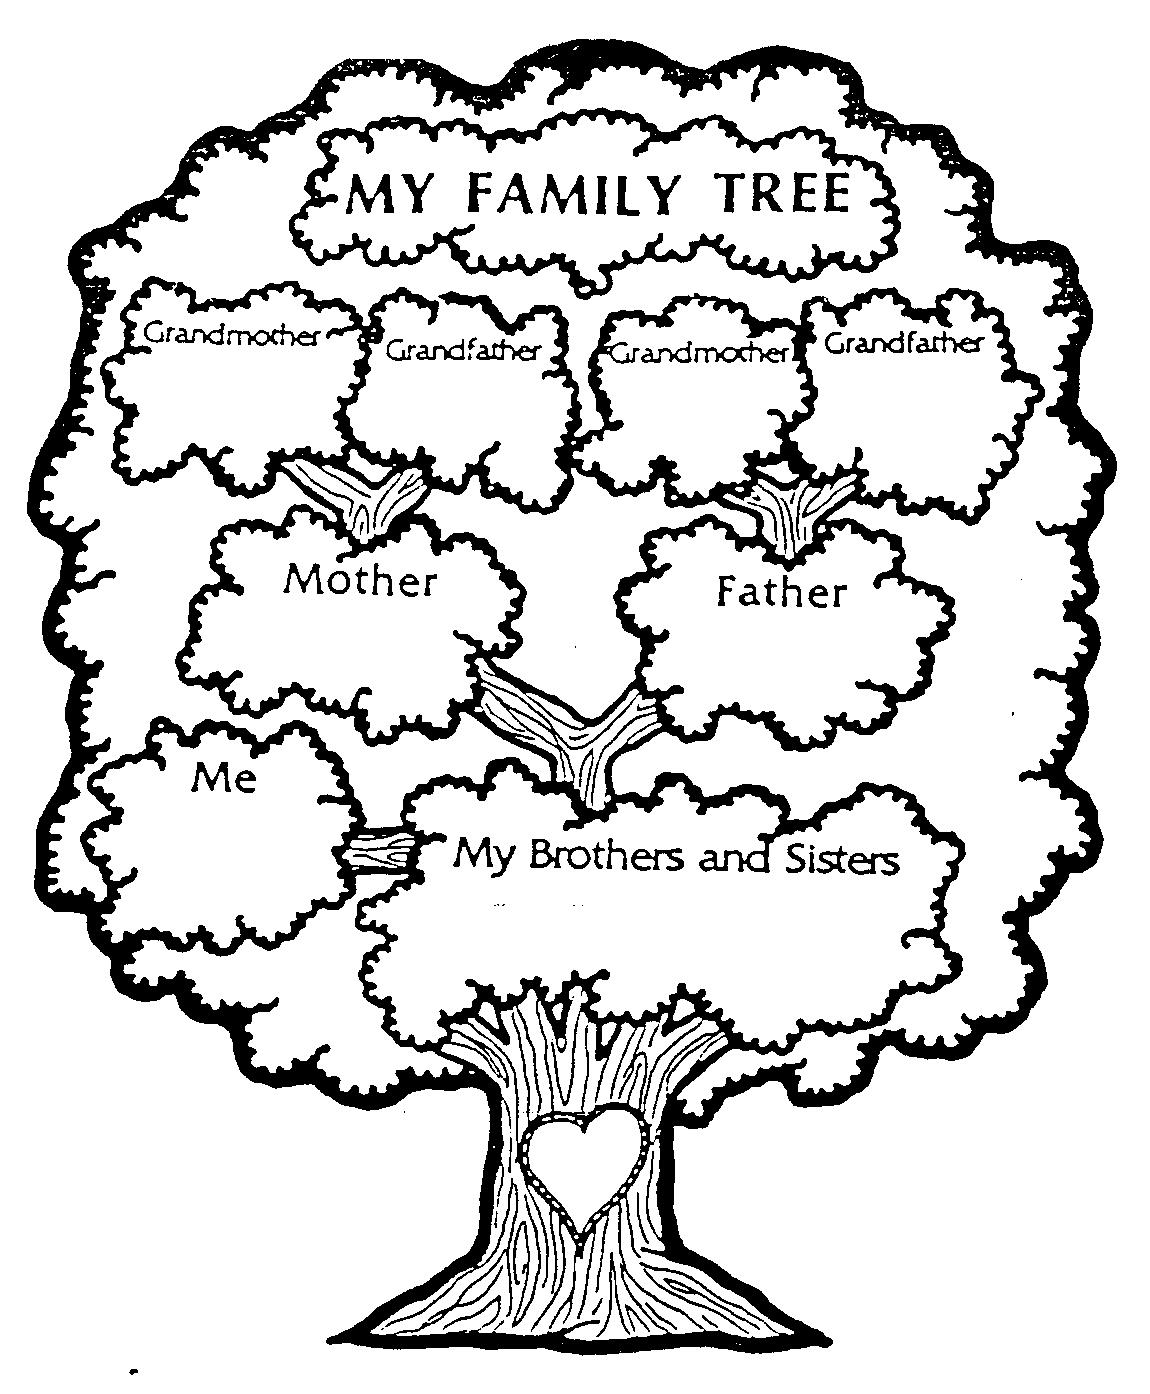 Teaching Your Children About The Family Tree And Their Ancestors